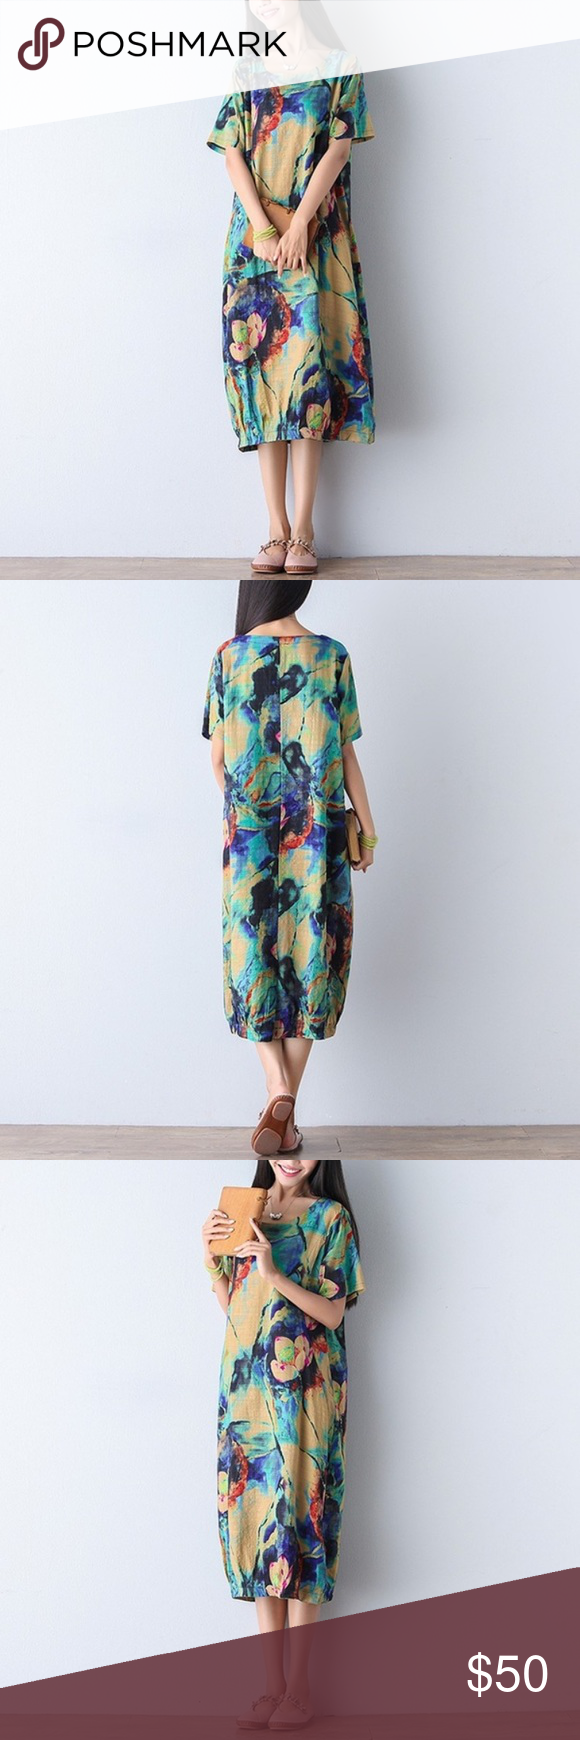 Plus Size Floral Oversized Linen Dress Brand new! Never worn.  This is meant to …